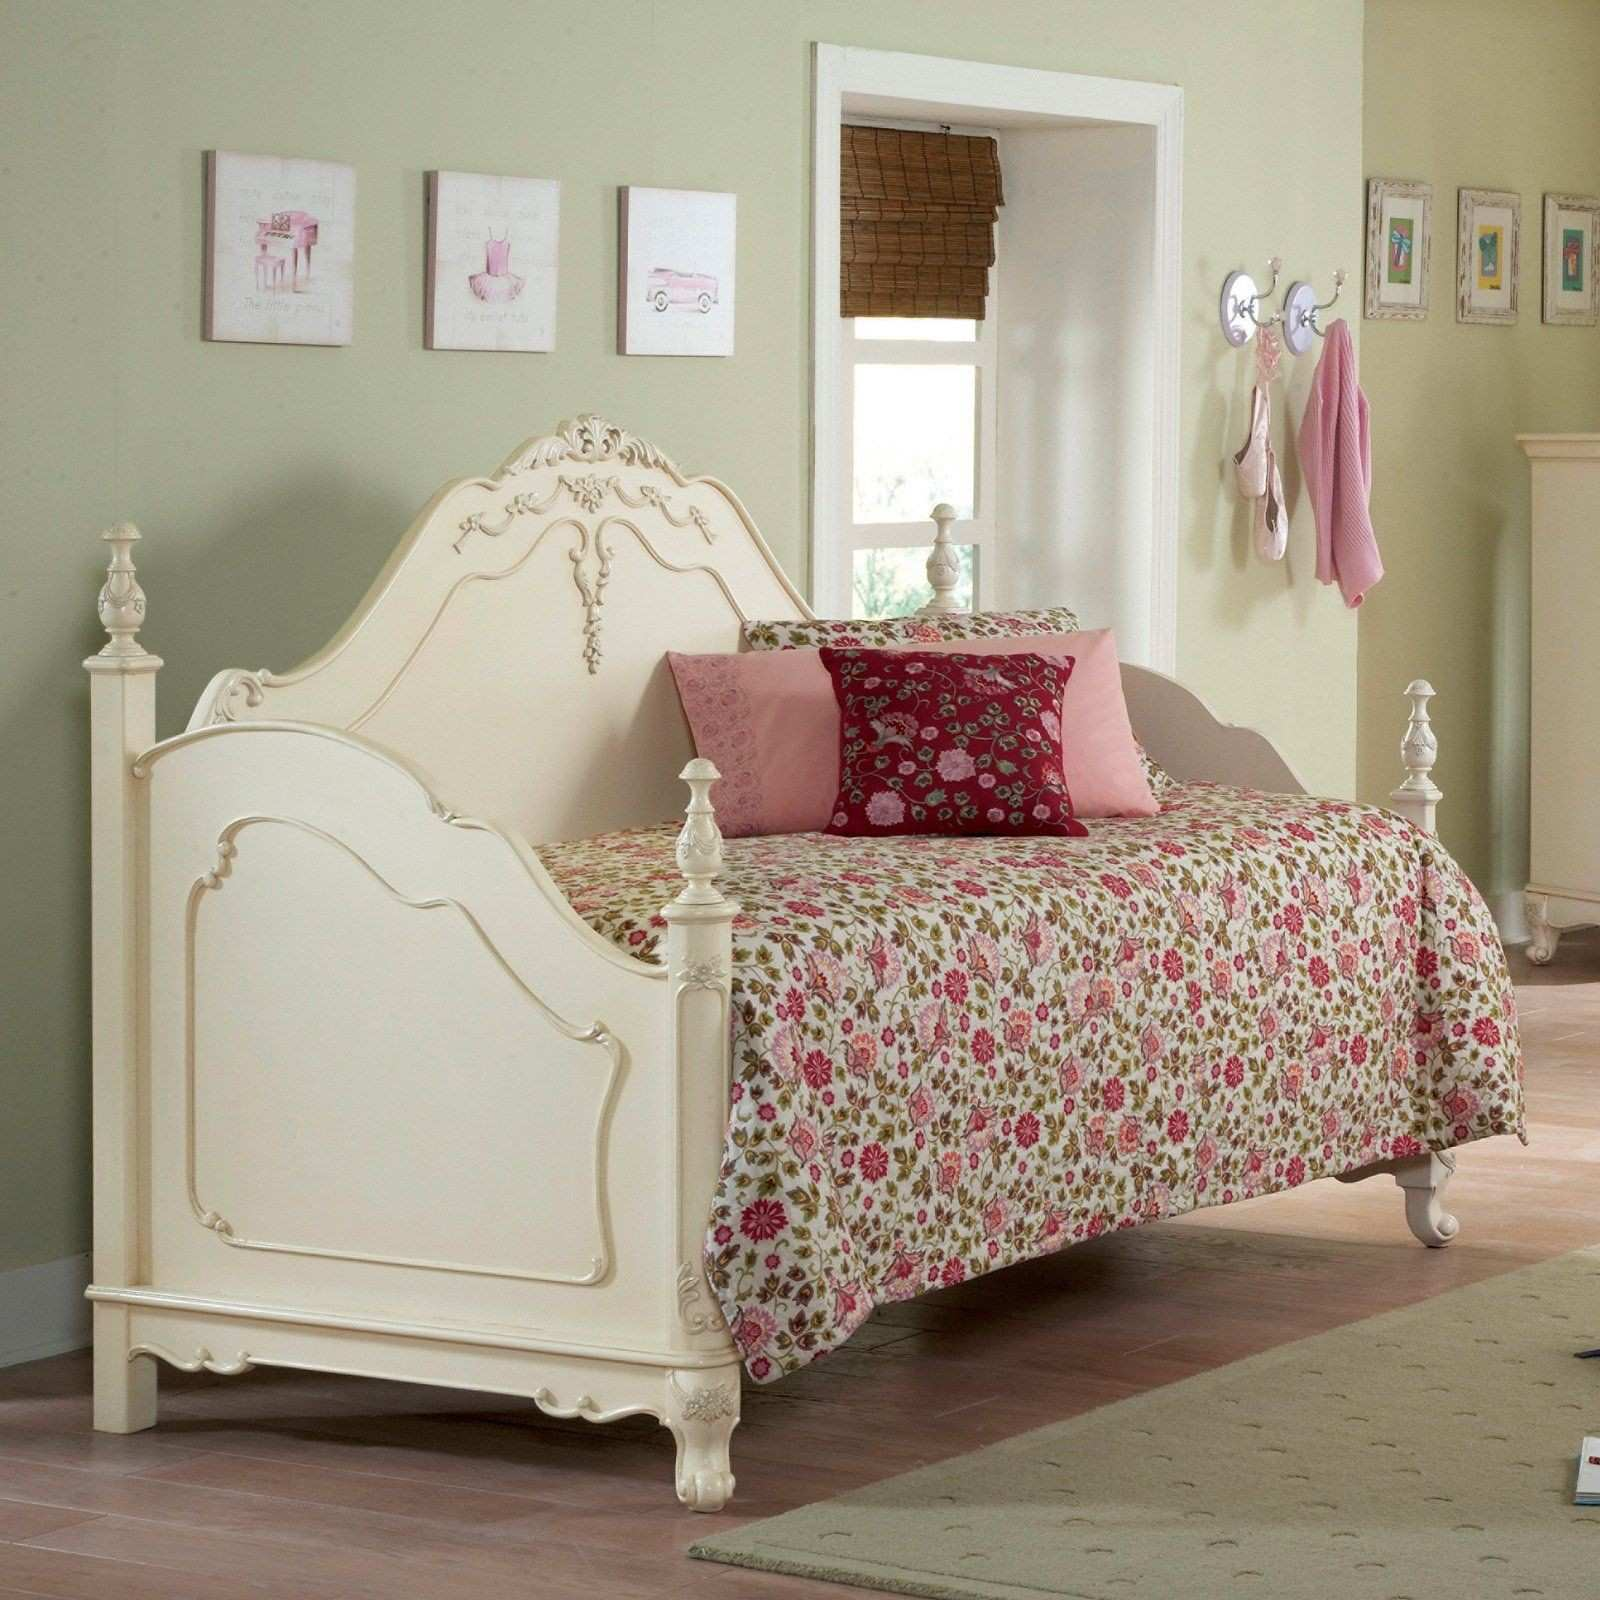 Super cute victorian cottage style daybed for little girl s room